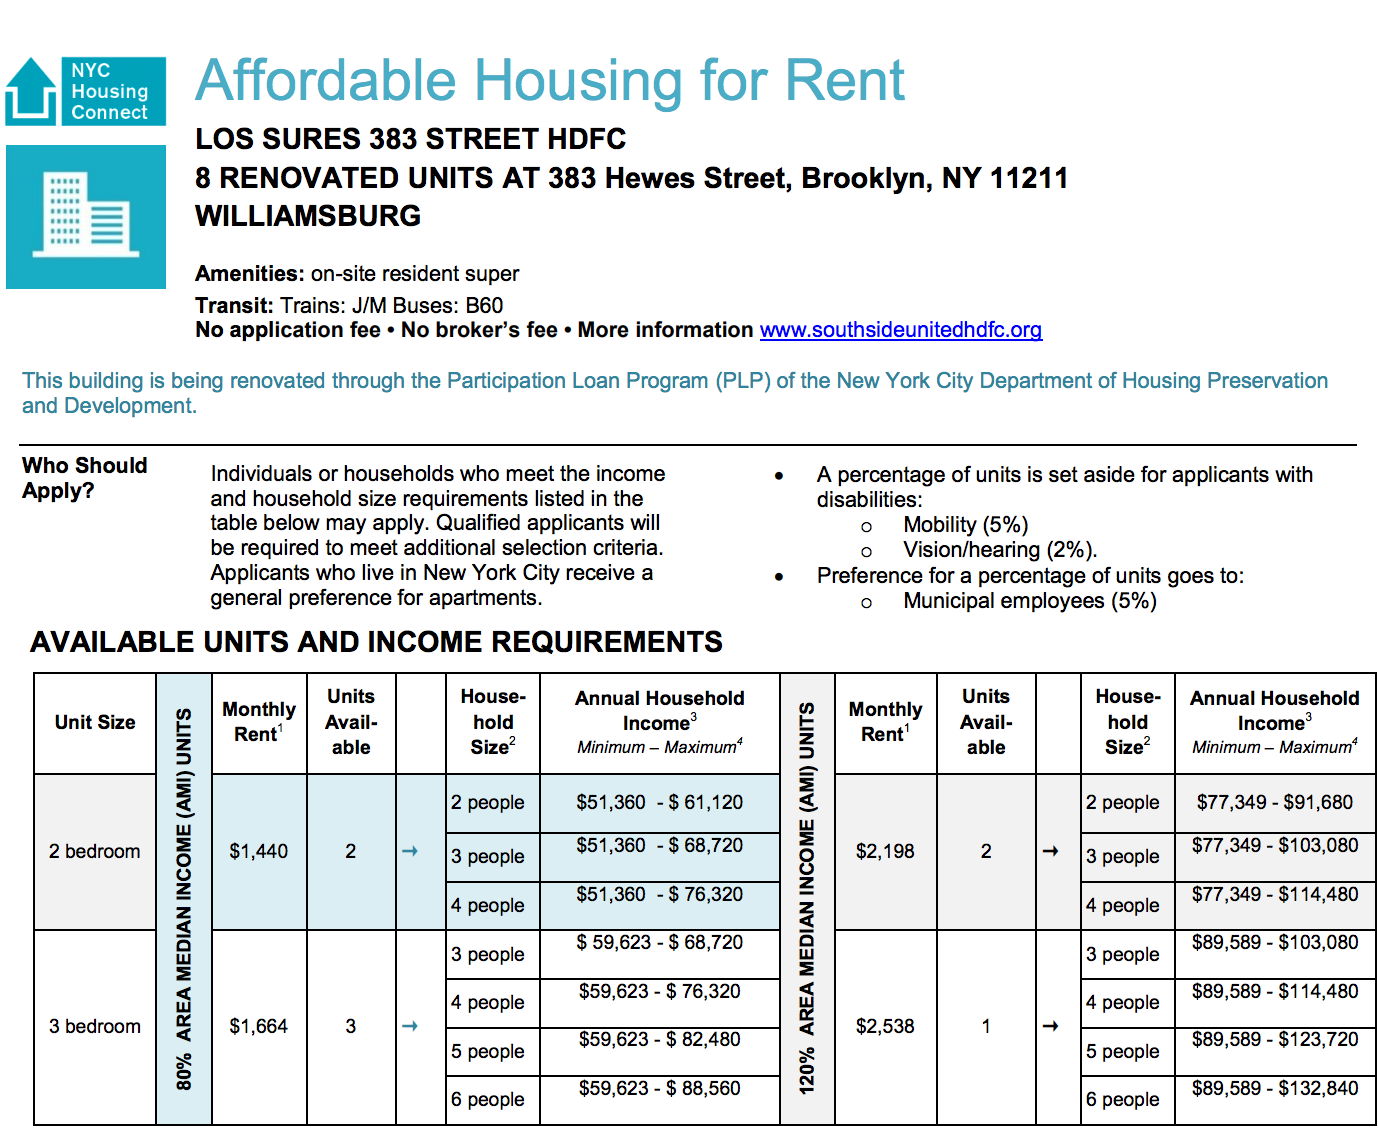 Affordable Housing Williamsburg: Lottery Open for 8 Units ...